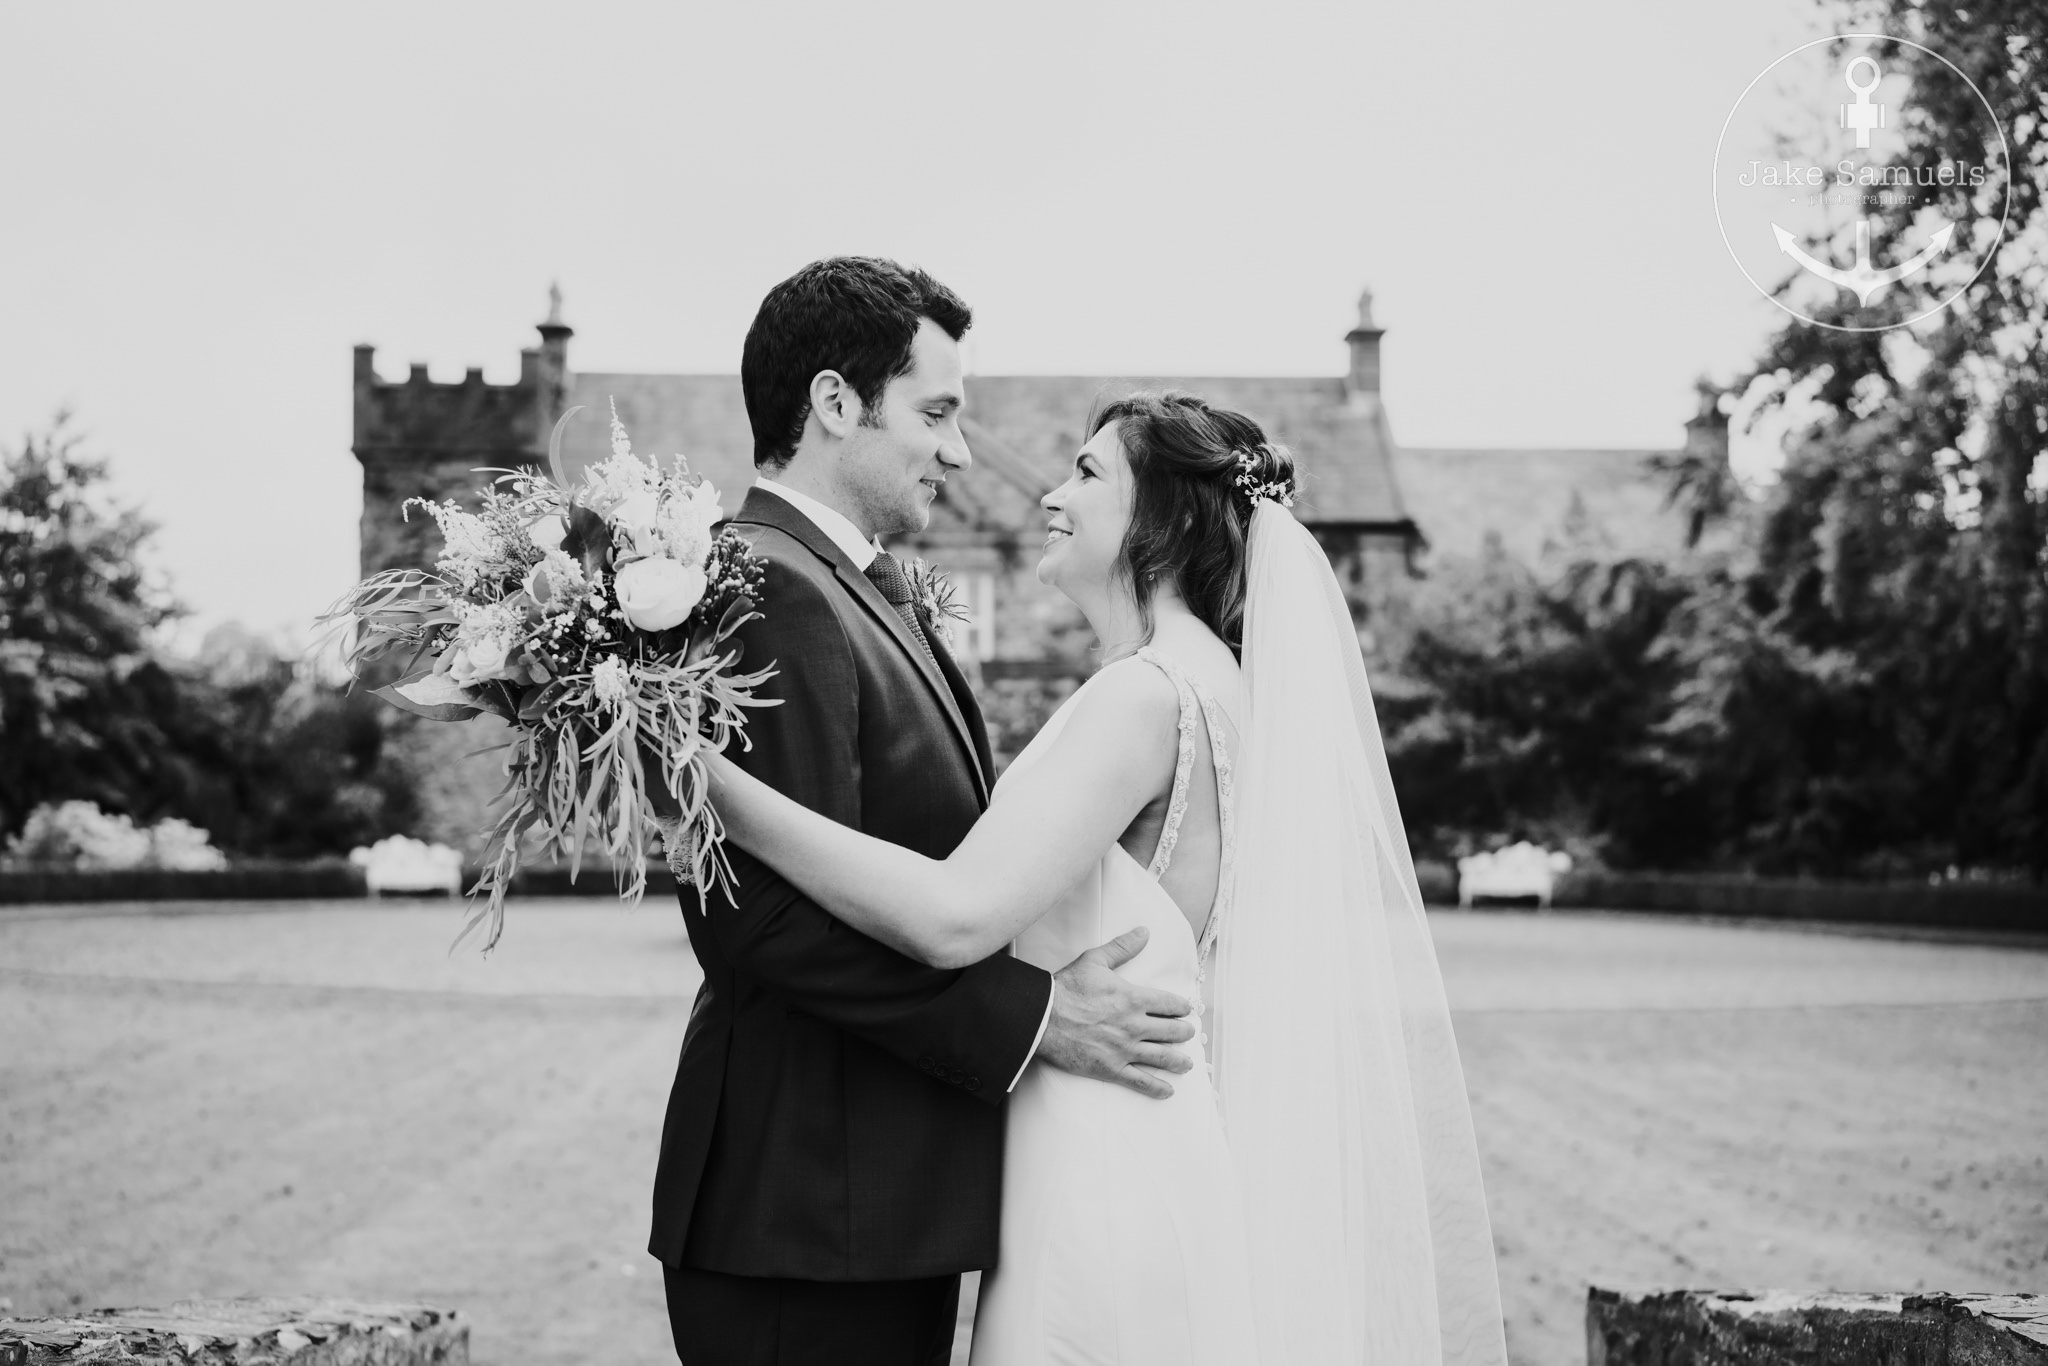 wedding photography ballymagarvey village by Jake smauels